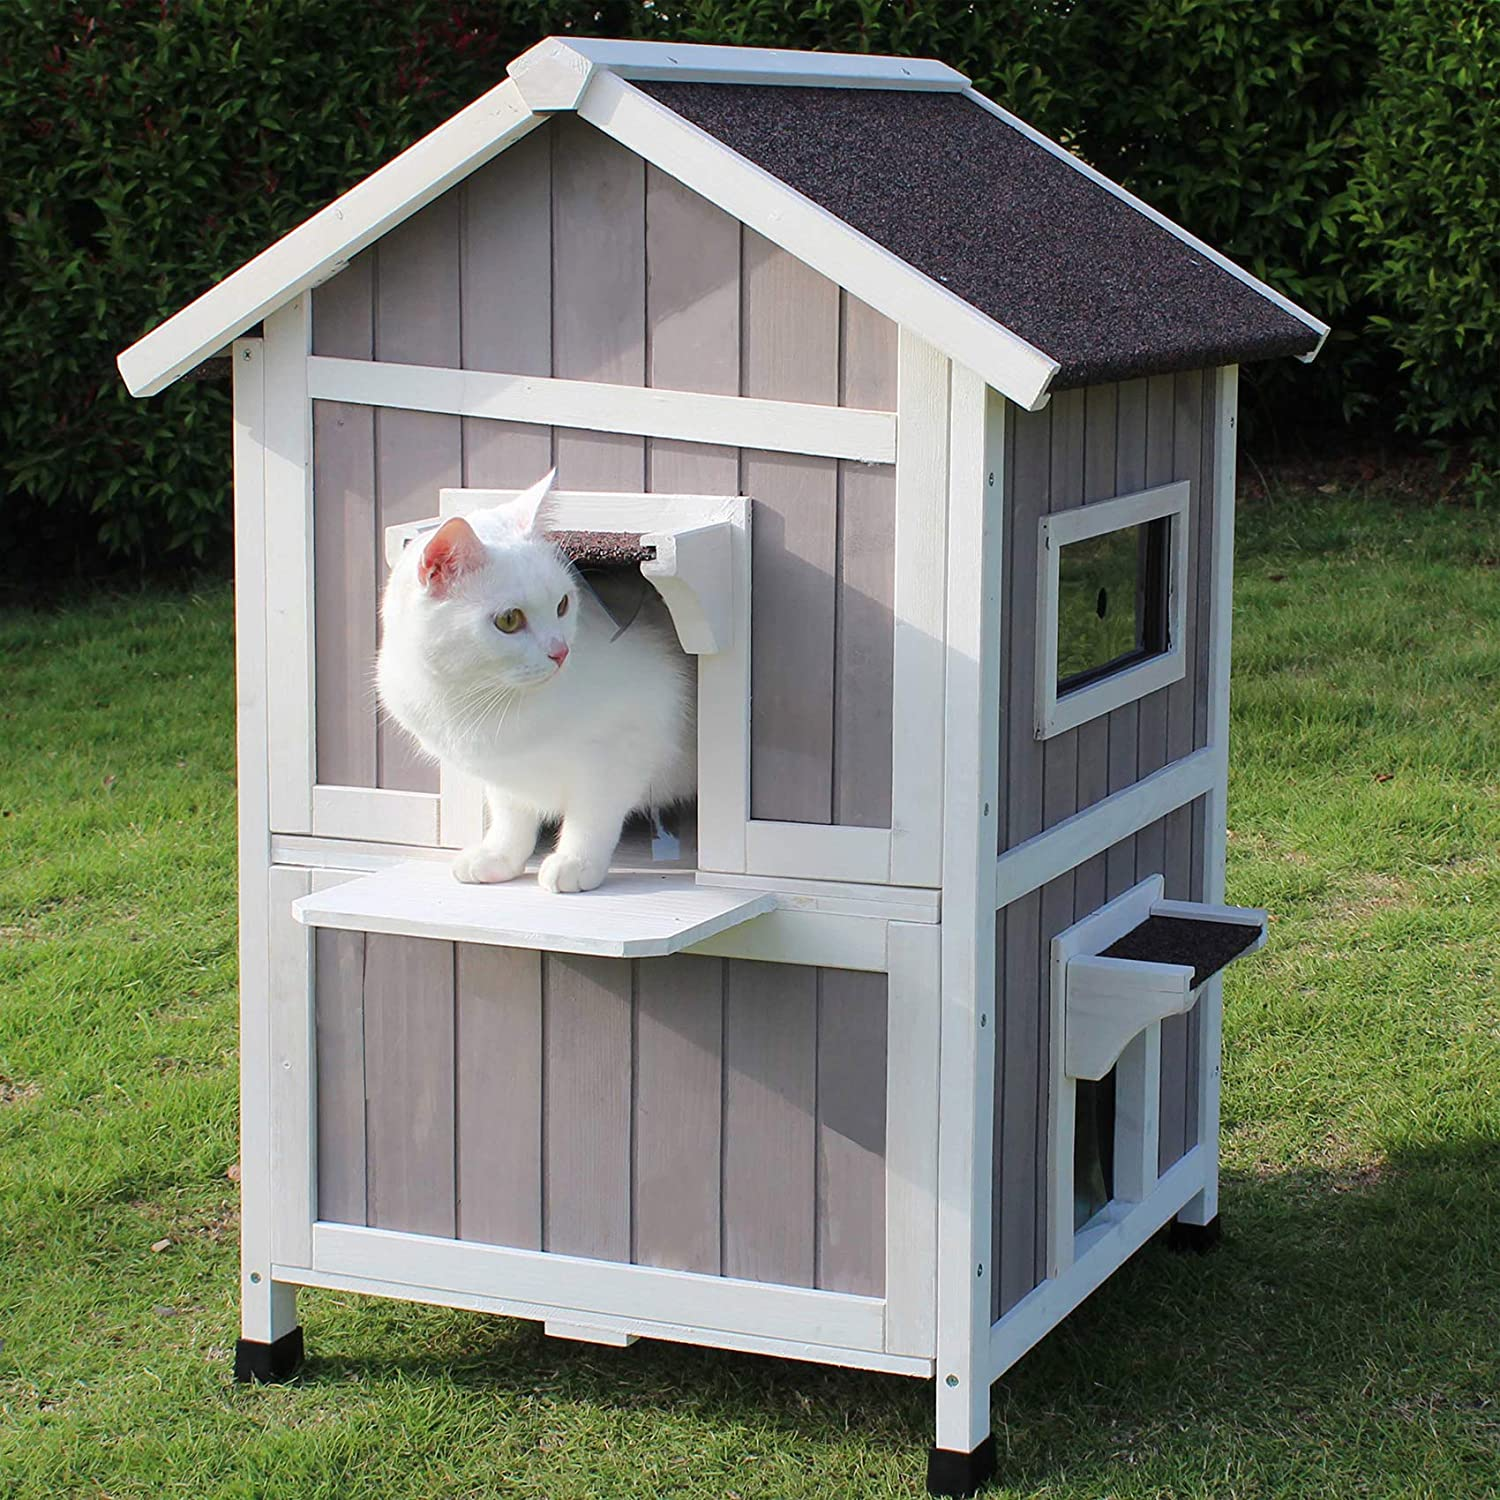 Rockever Feral Cat Shelter Outdoor With Escape Door Rainproof Outside Cat House Two Story For Three Four Cats With Two Mat Color Grey Pet Supplies